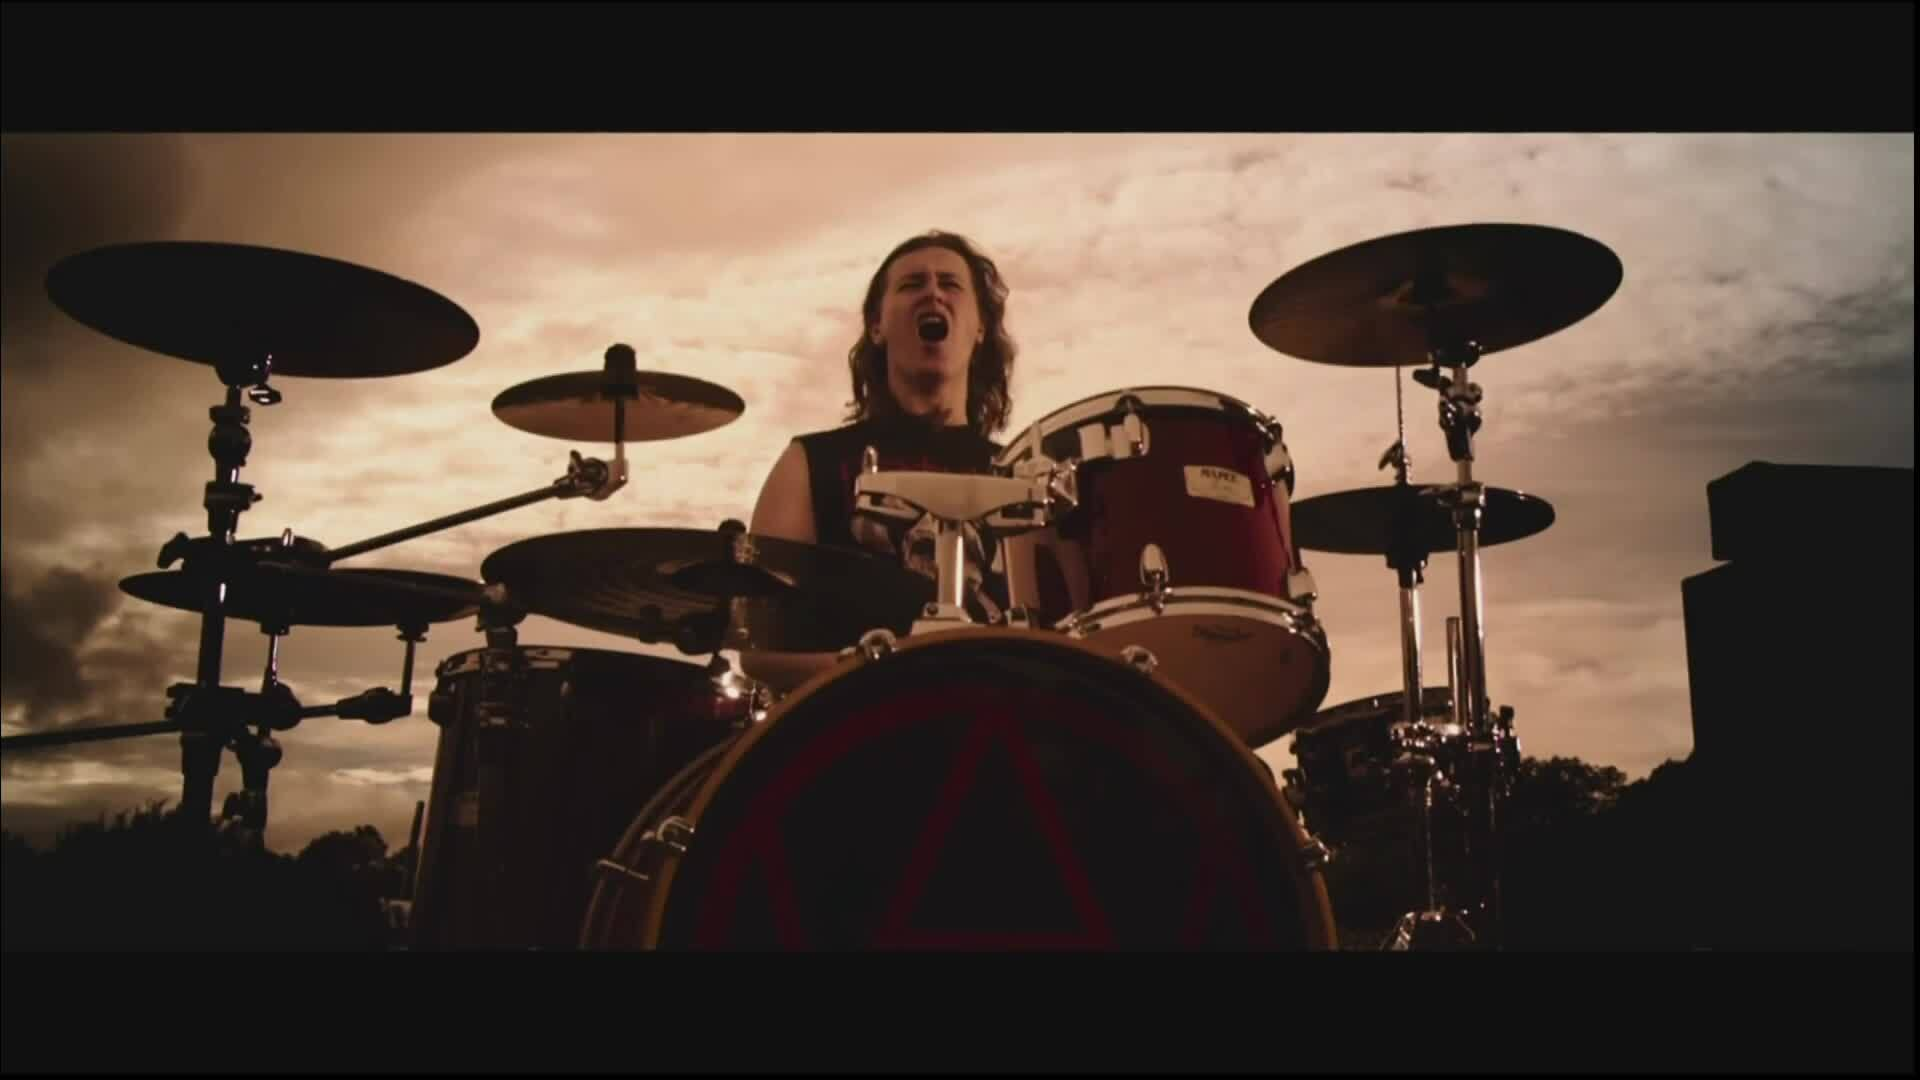 Video for Alien Weaponry song to debut on US airwaves